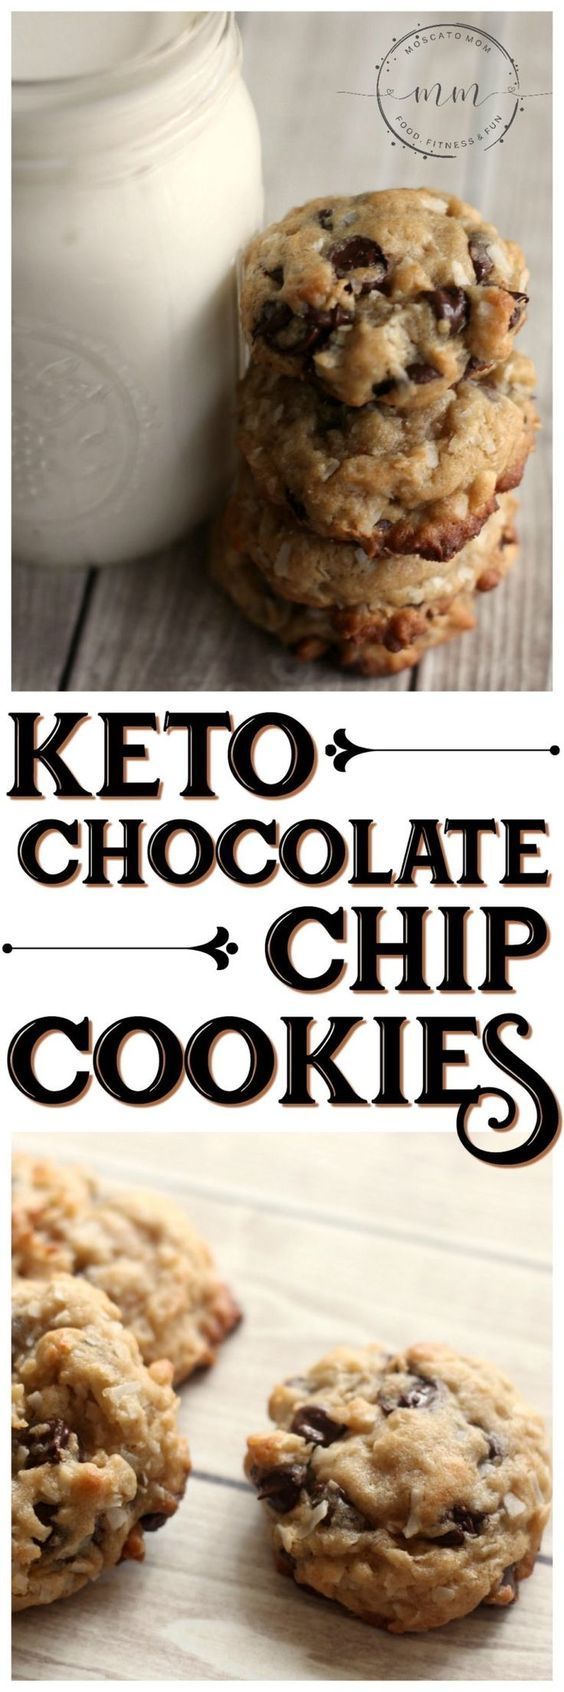 Chocolate Chip Cookies Without Eggs Nz